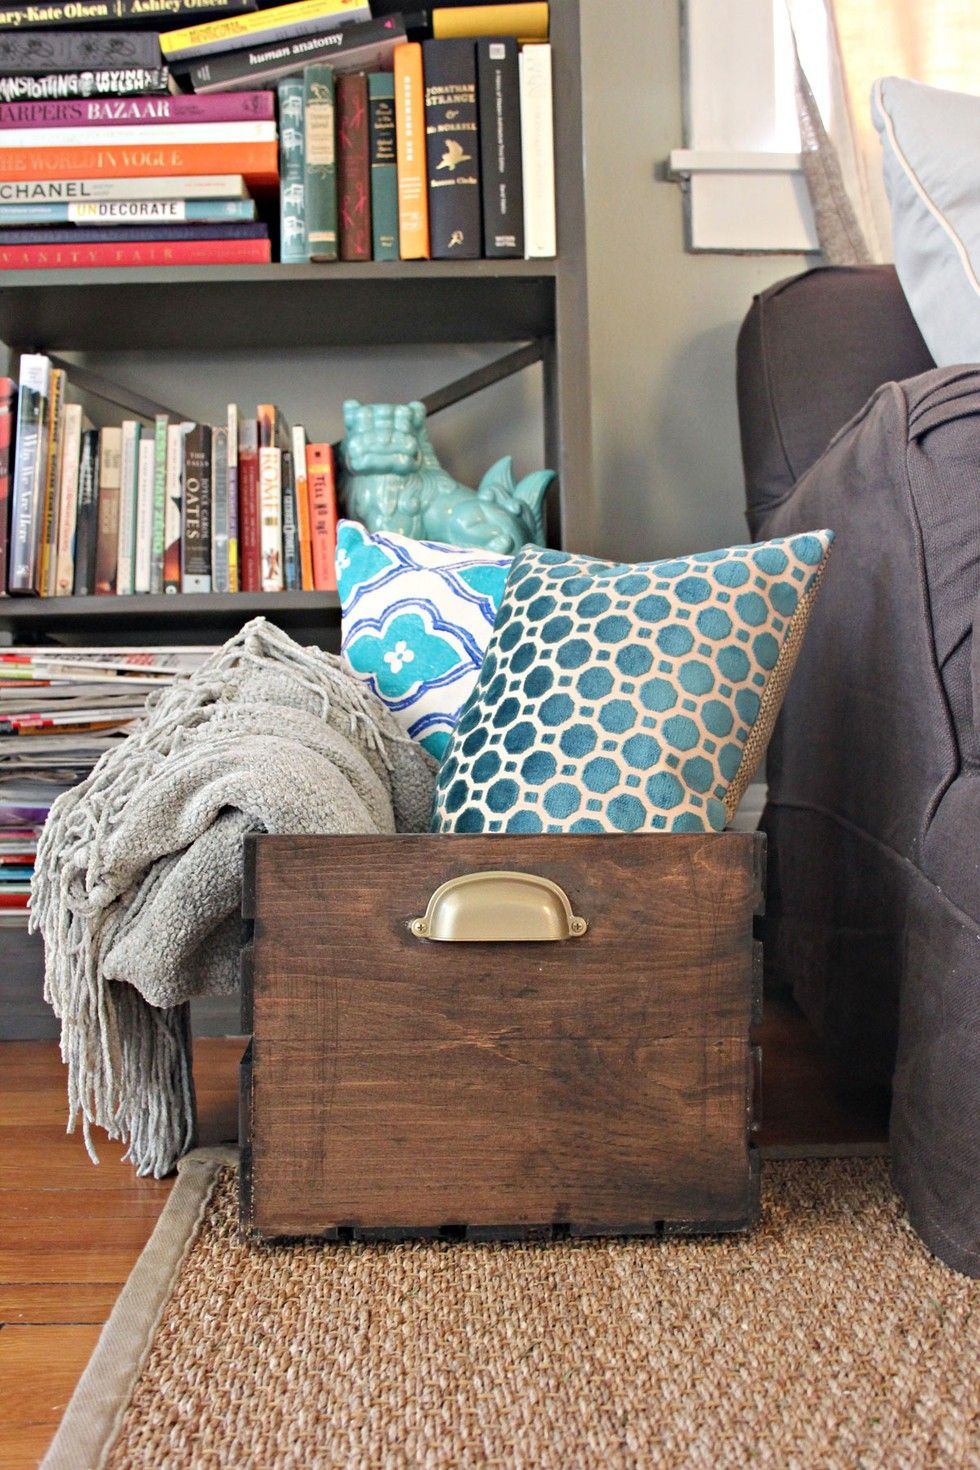 Upcycle Old Crates Into Beautiful Furniture Like This Living Room Storage Box Via Thesnugonline